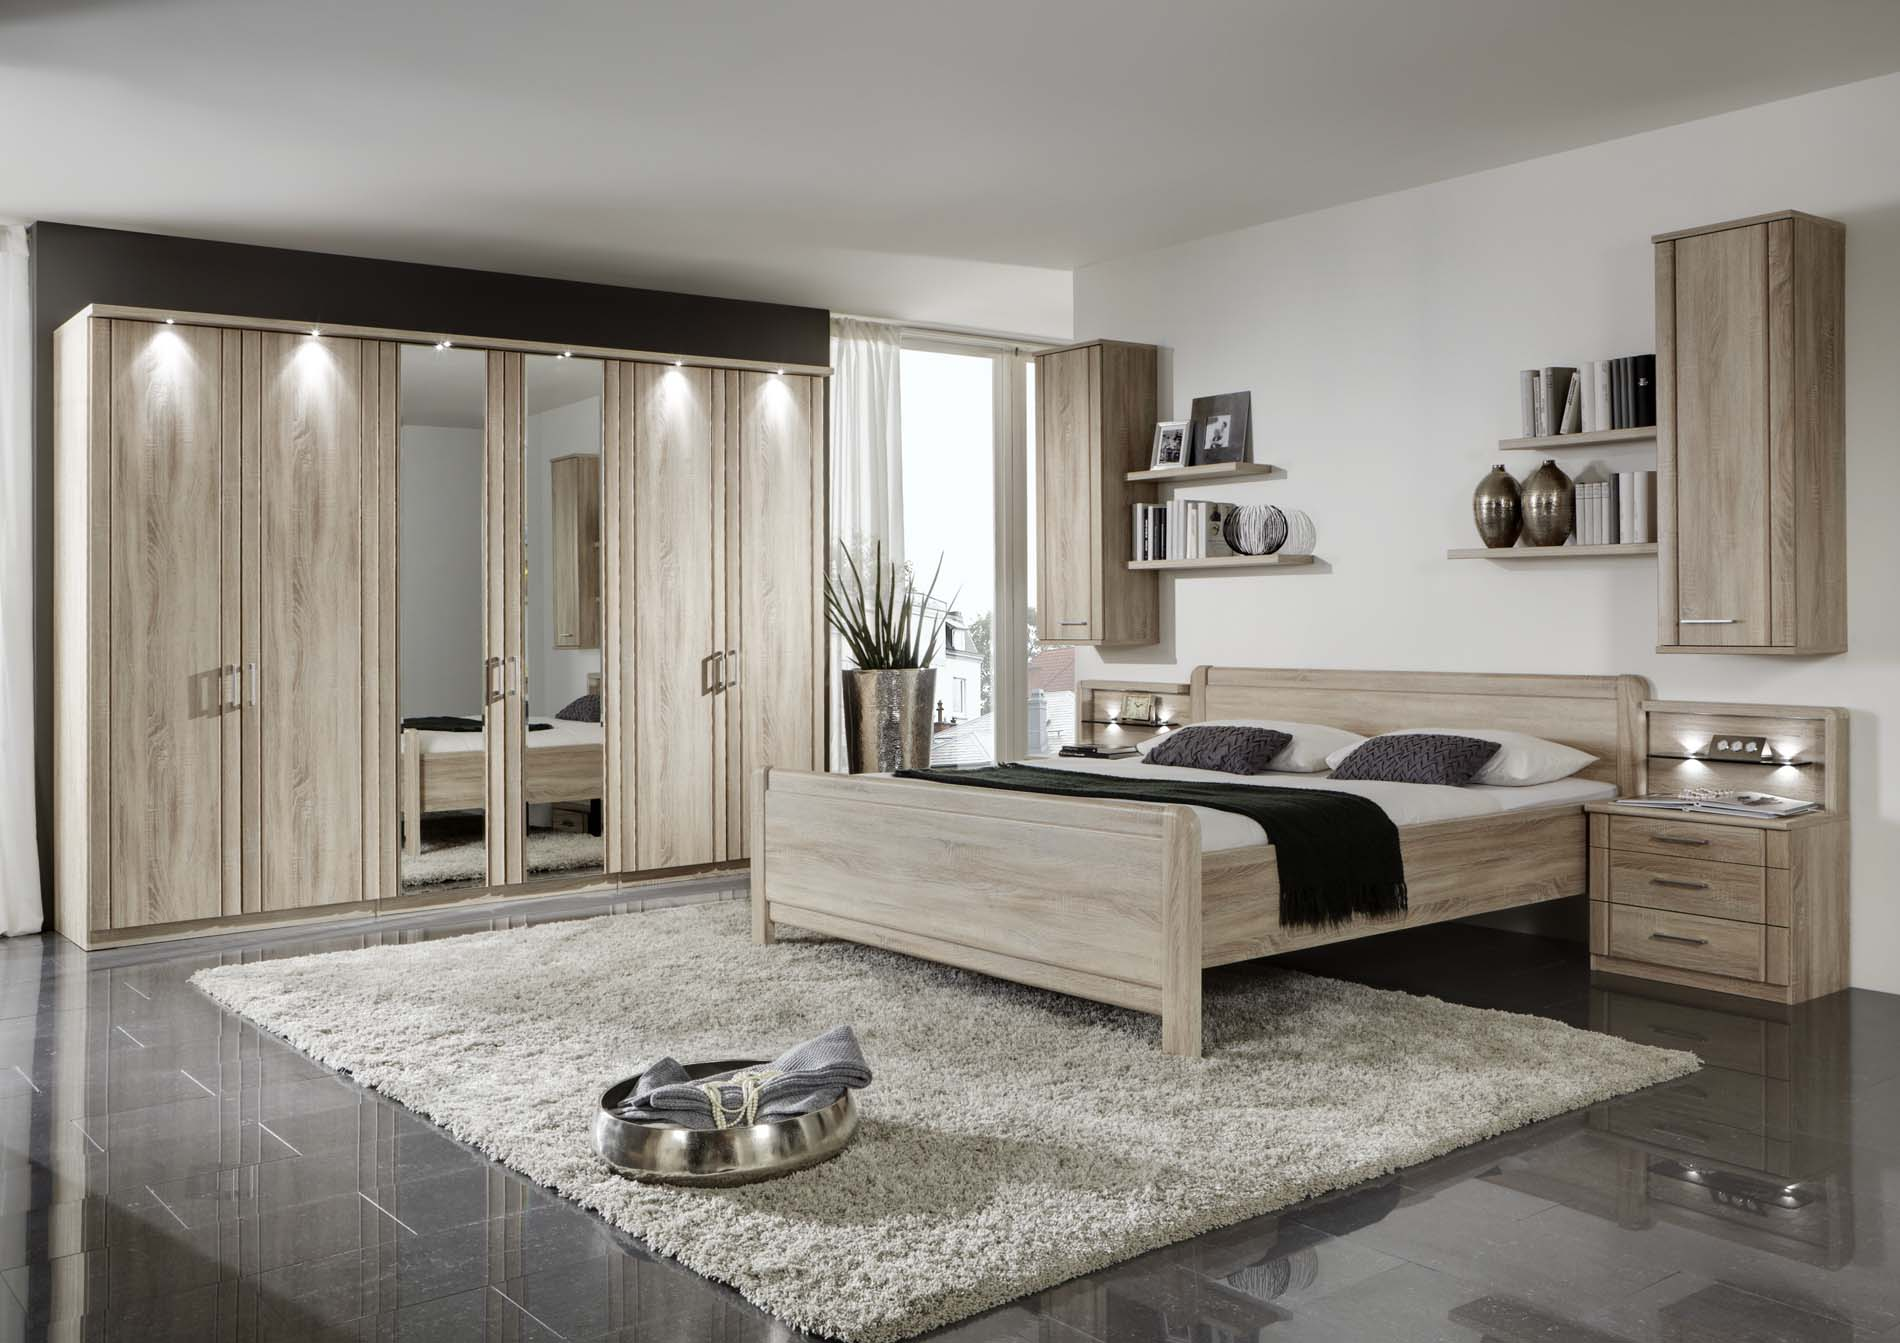 Chambre à Coucher Blida Wiemann Valencia Bedroom Set In Rustic Oak Modish Furnishing